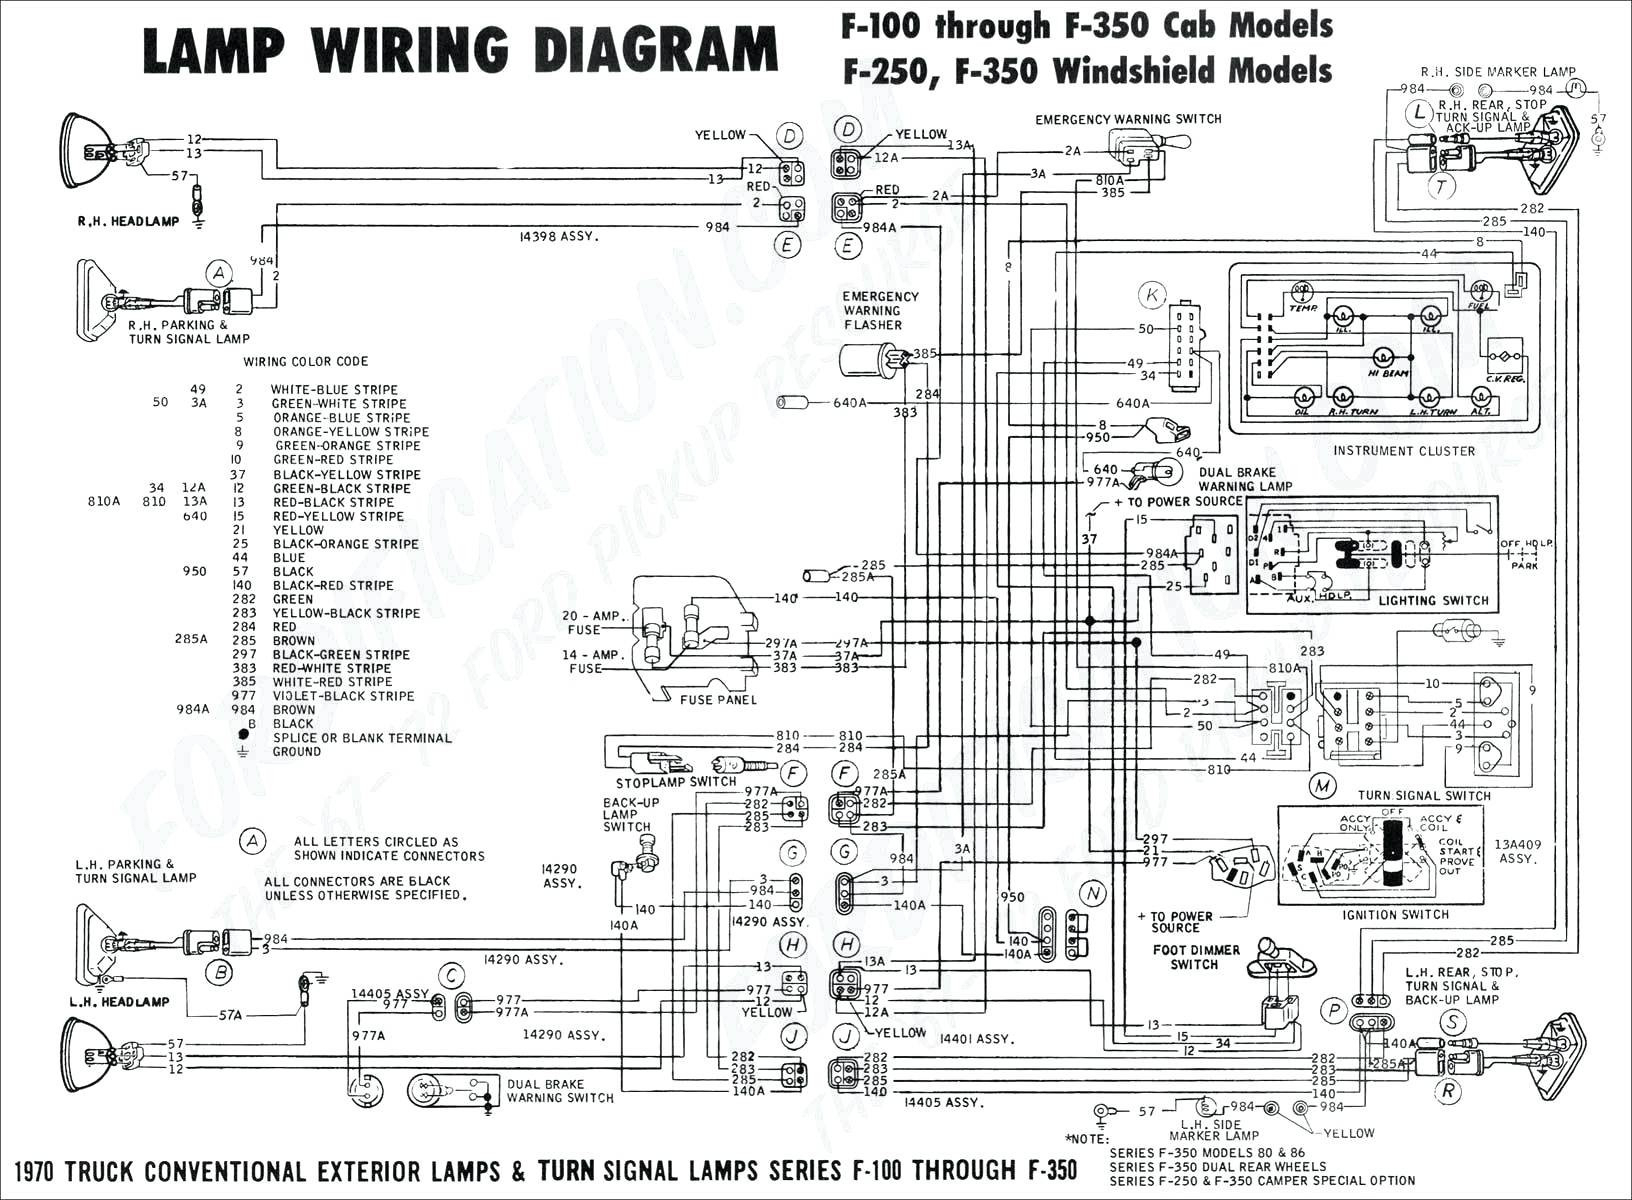 Get 2001 Ford F250 Trailer Wiring Diagram Sample - Trailer Wiring Diagram For Ford F350